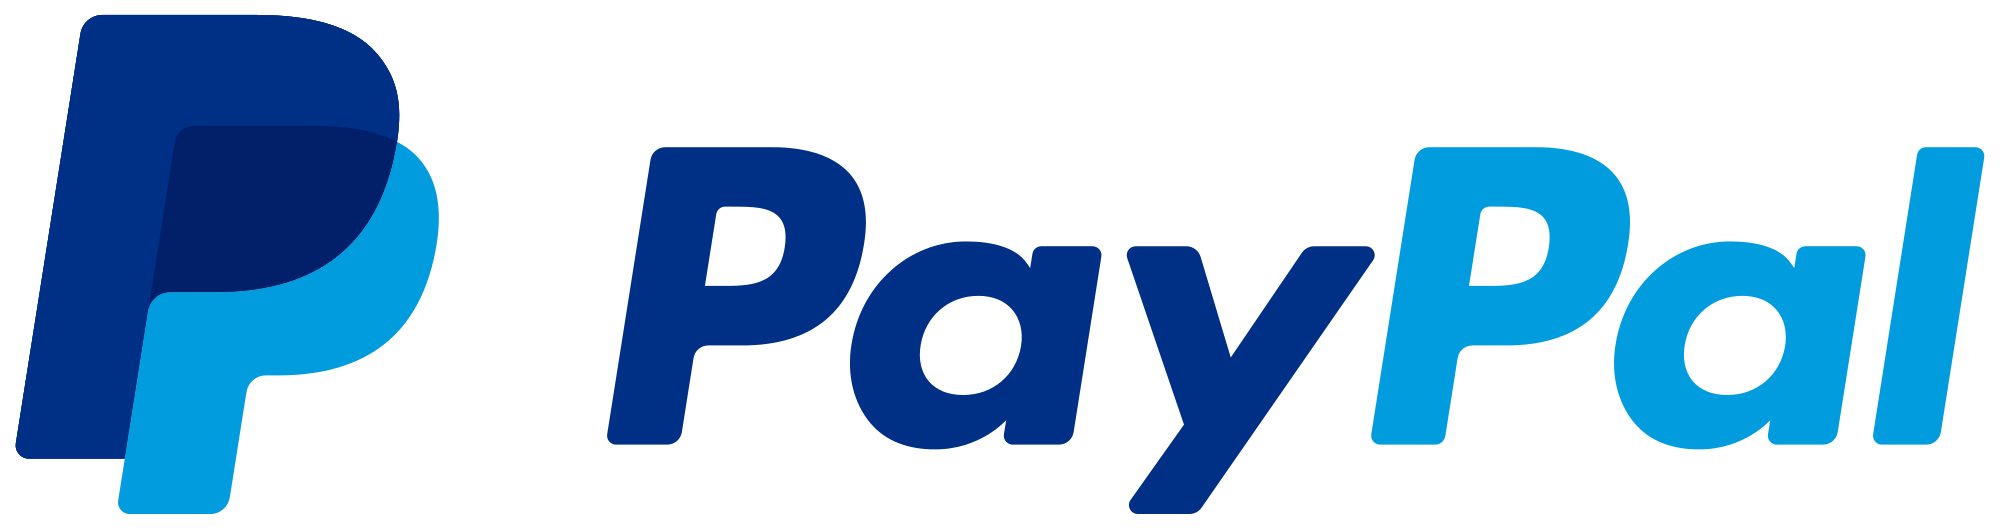 Paypal pagamenti Comfort Online